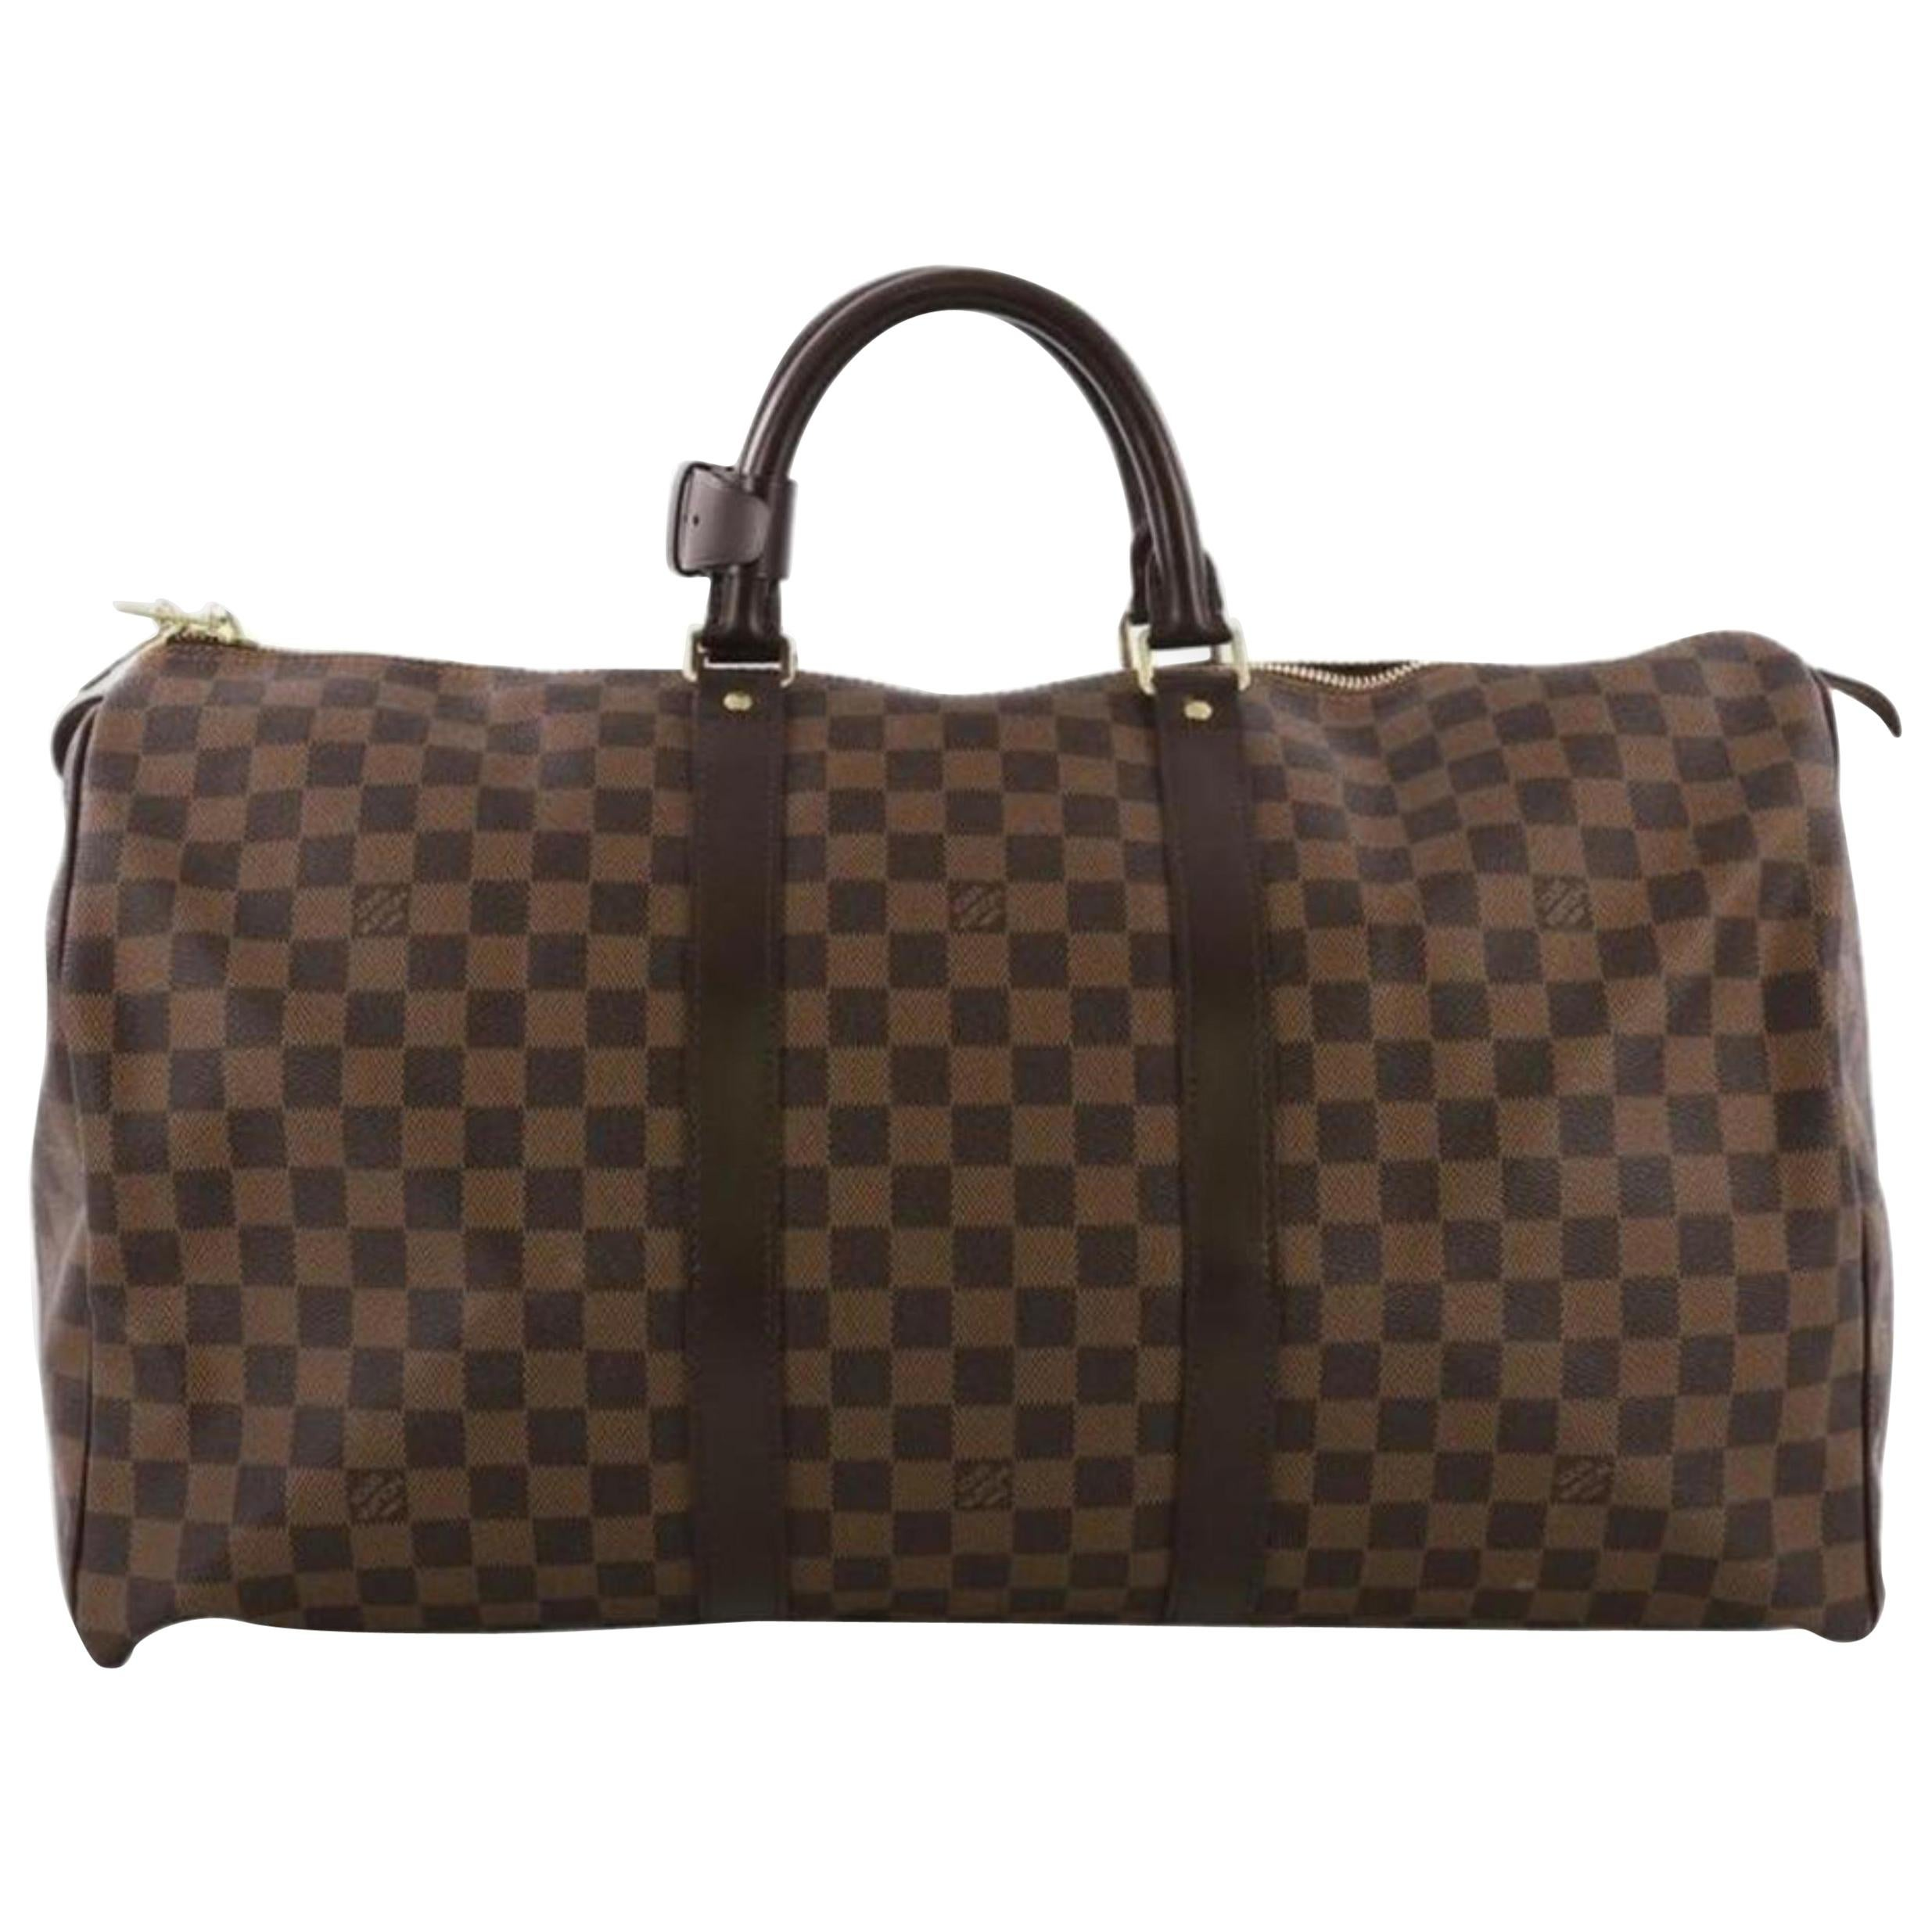 c3c02d6543e2 Vintage Louis Vuitton Luggage and Travel Bags - 390 For Sale at 1stdibs